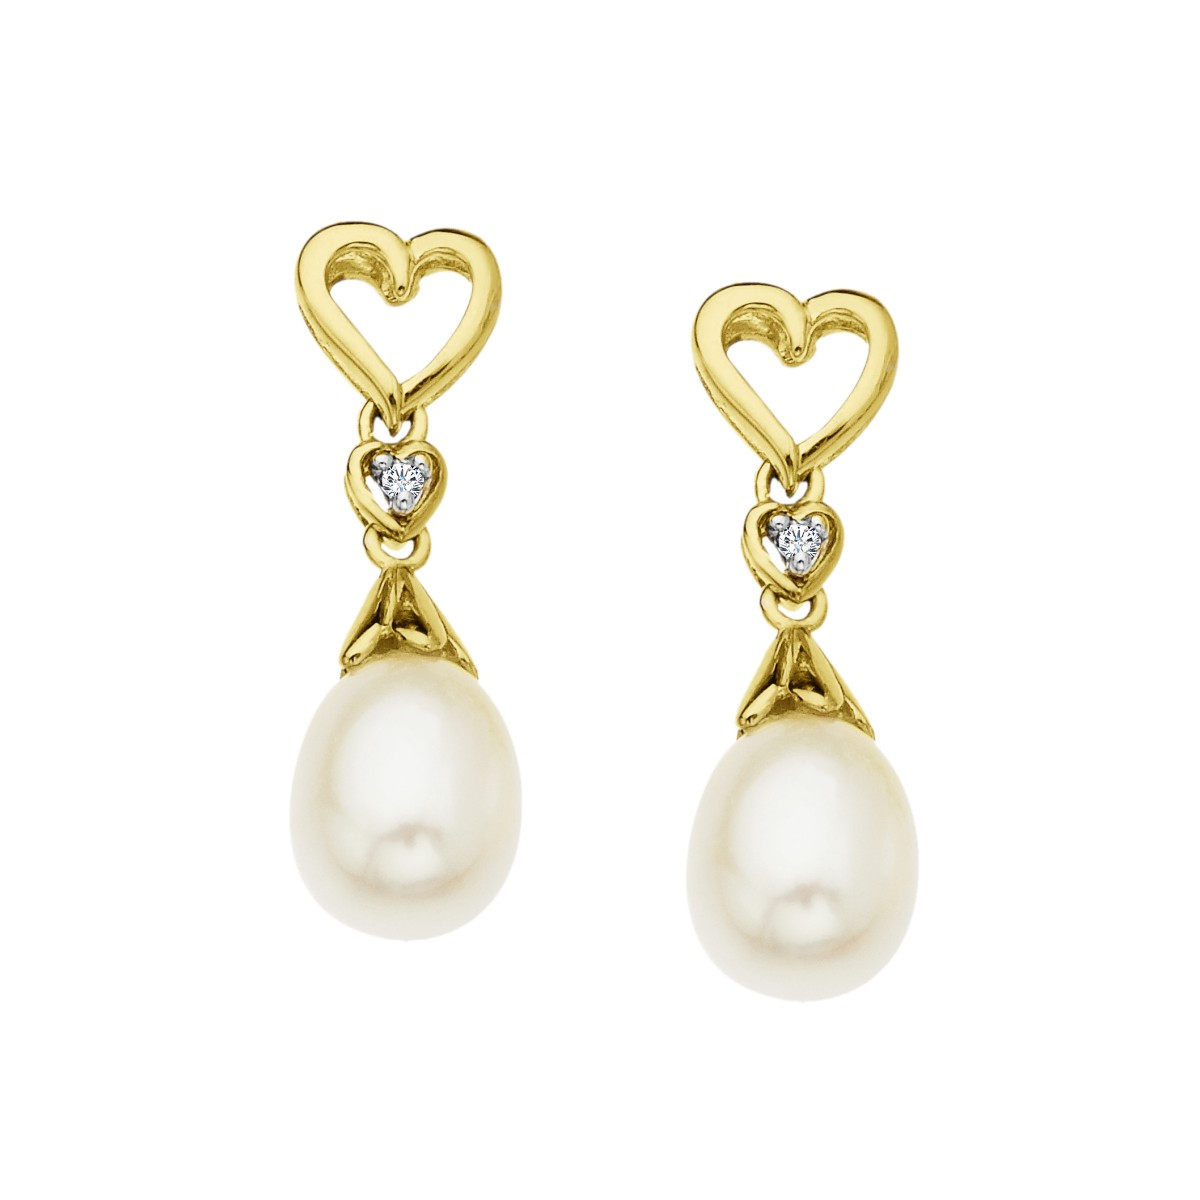 Pearl Heart Drop Earrings with Diamonds in 10K Gold